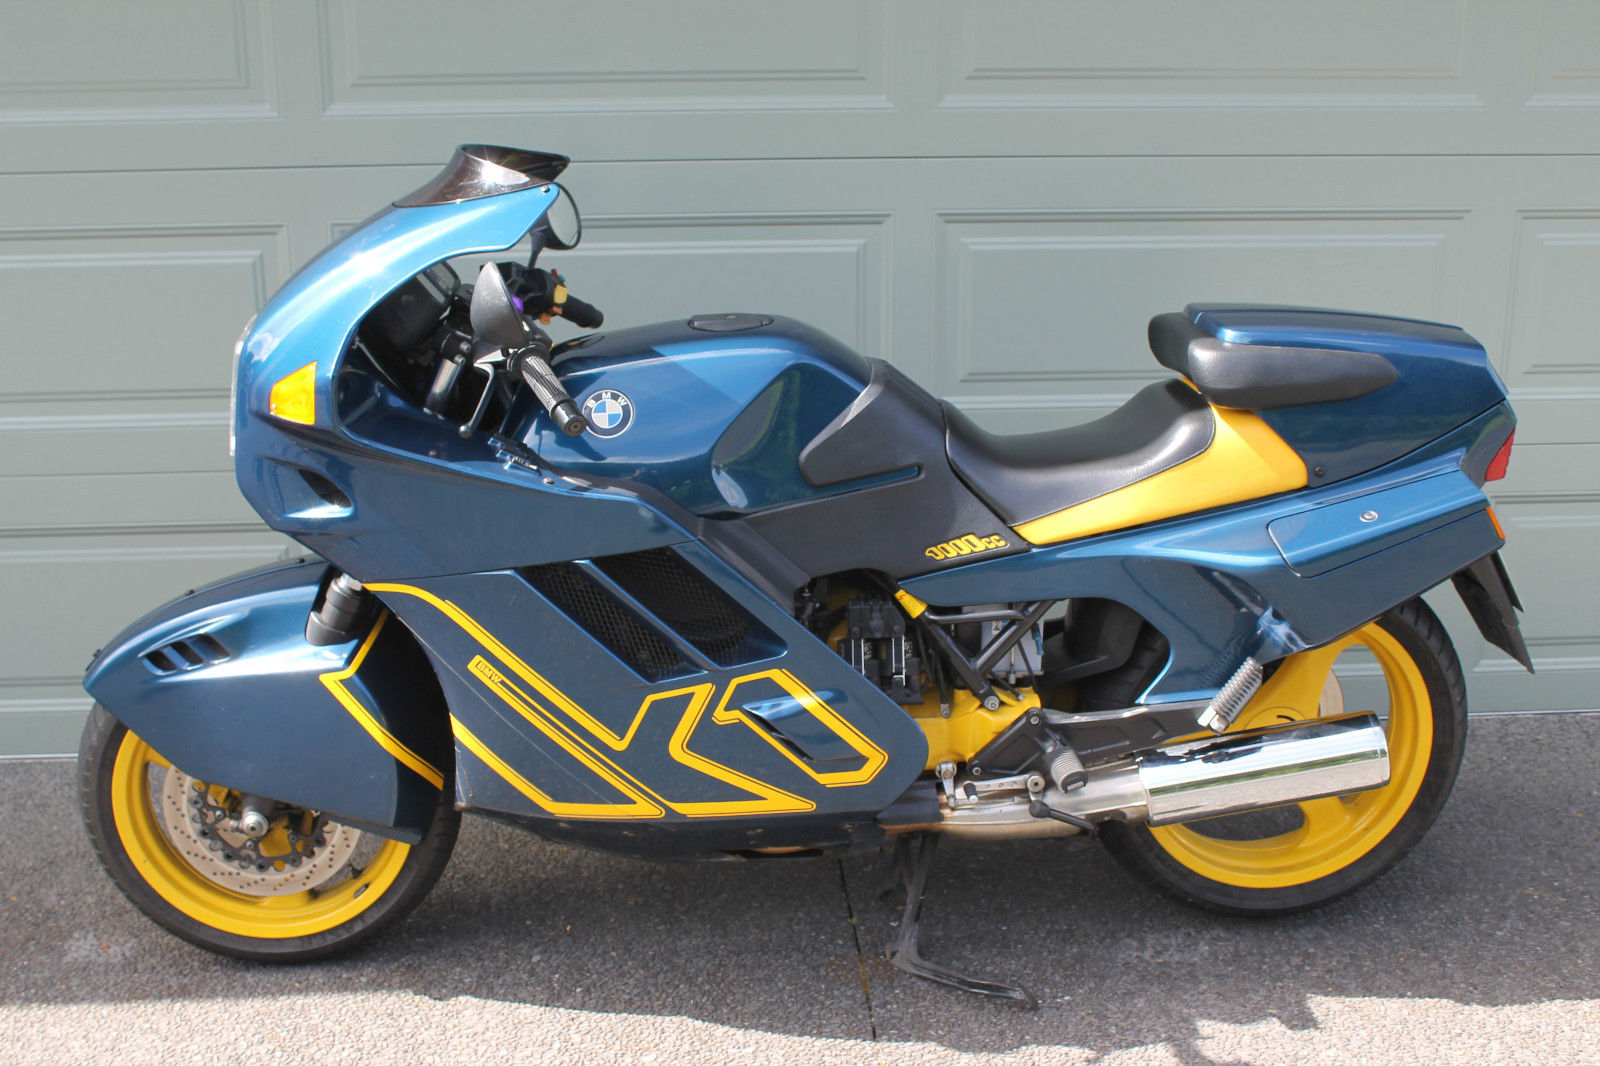 Does the K stand for Kiwi? 1990 BMW K1 - Rare SportBikes For Sale